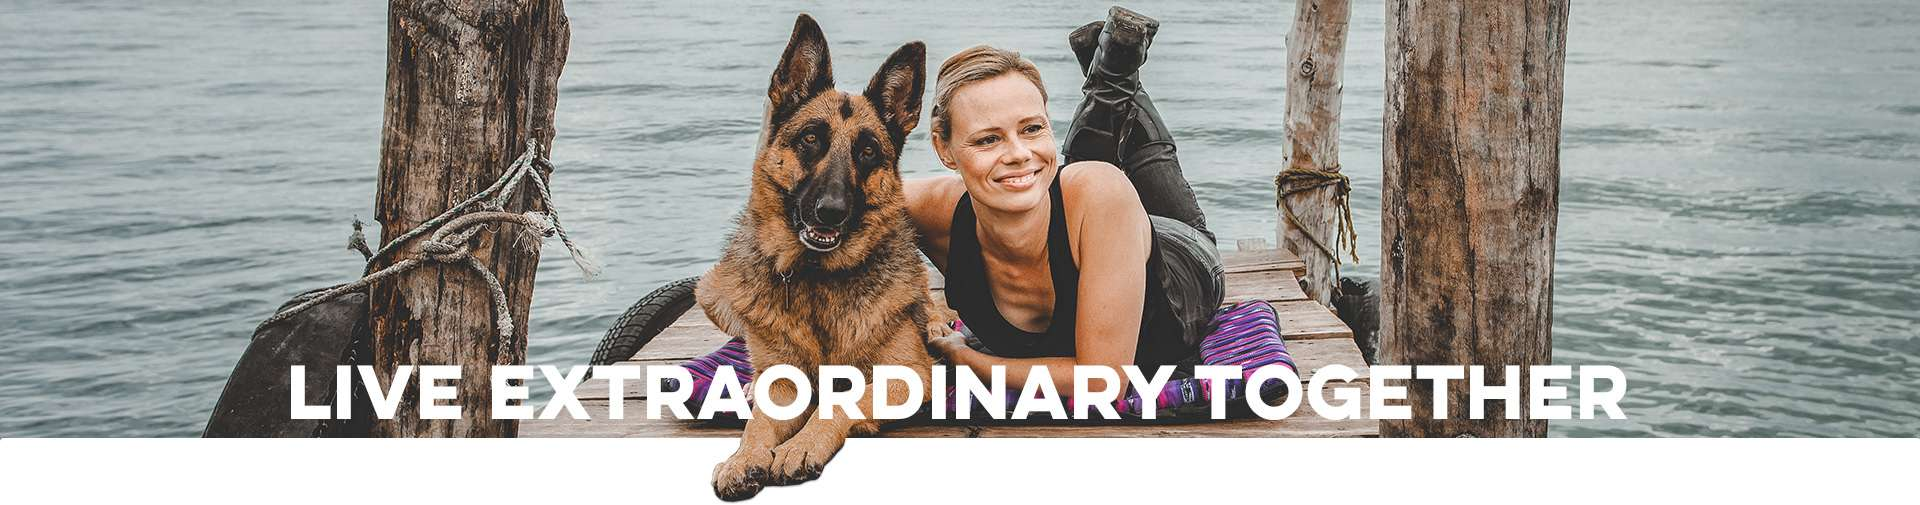 """Young woman and German shepherd dog lay together on dog travel bed on wooden dock with overlaid text: """"LIVE EXTRAORDINARY TOGETHER"""""""